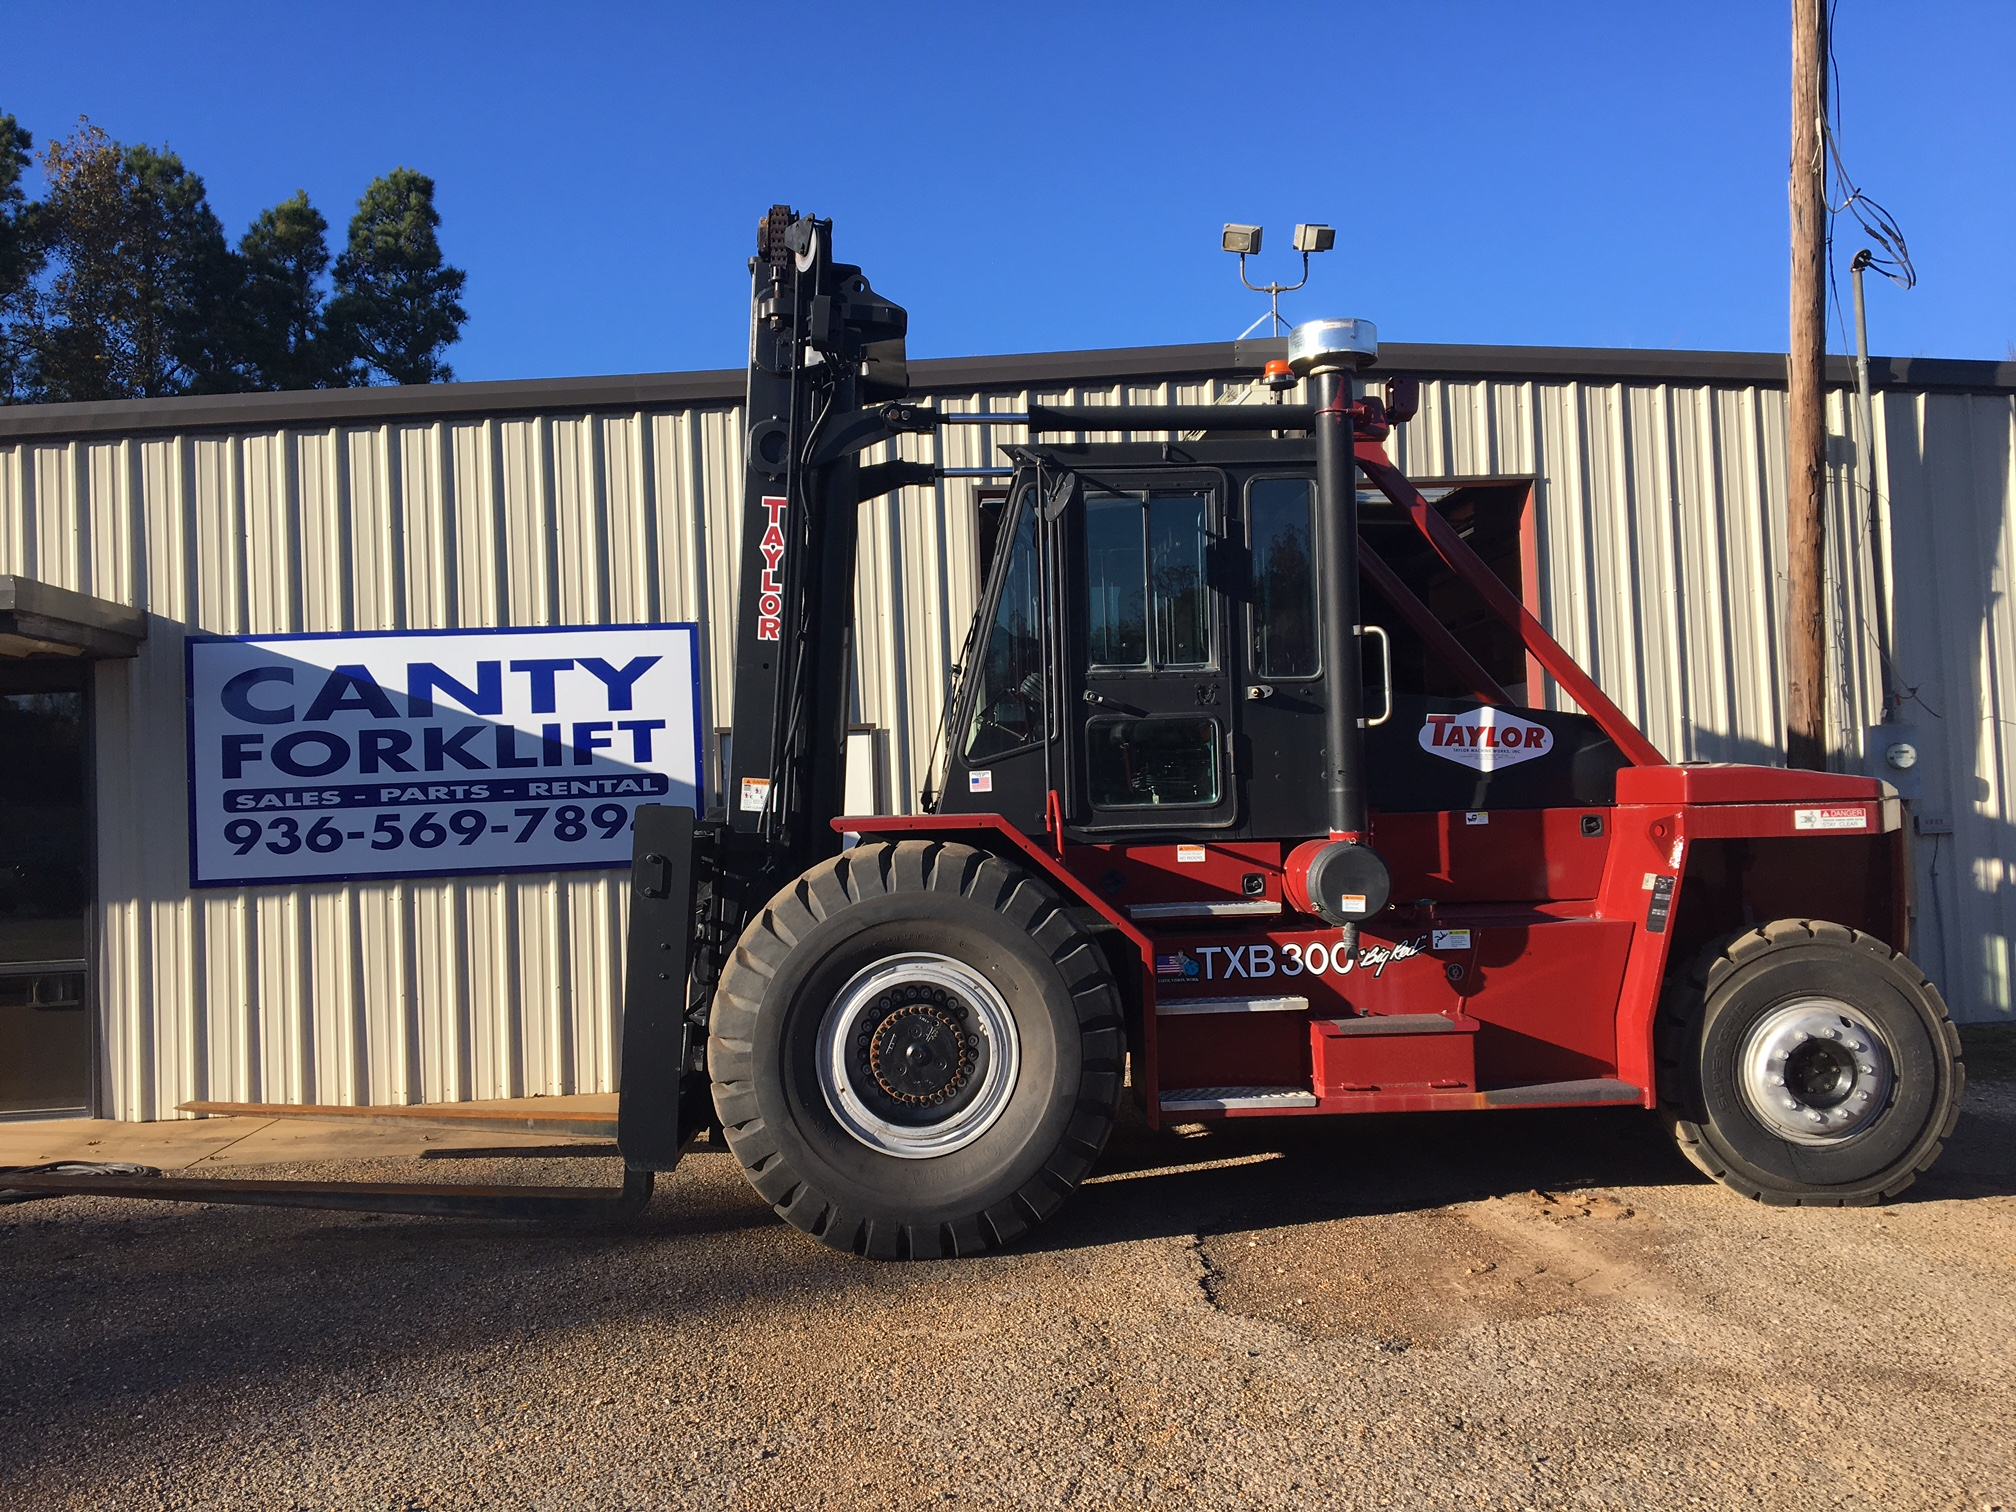 Home | CANTY FORKLIFT, INC. - Serving the Material Handling industry ...